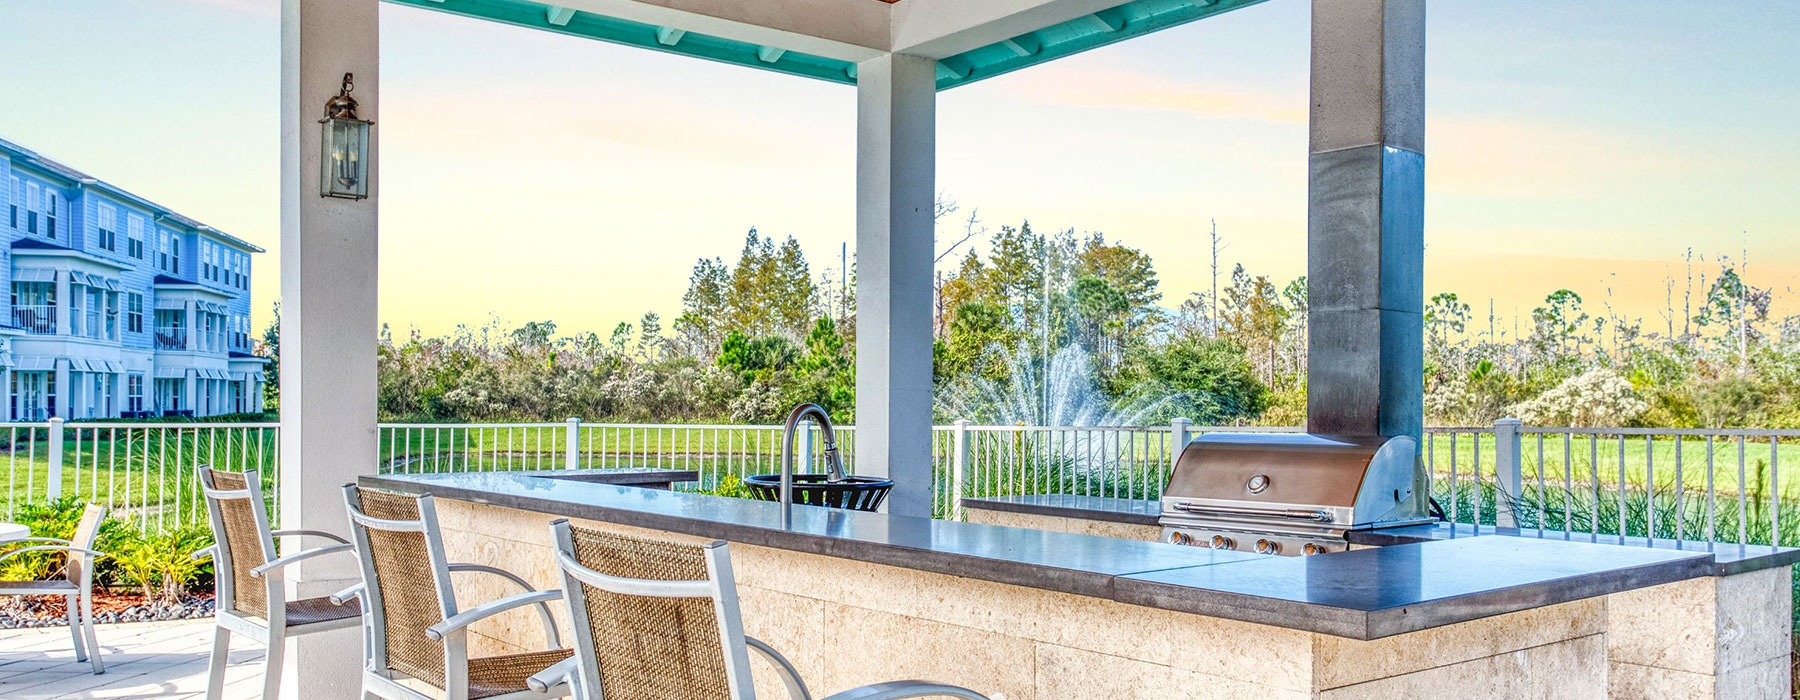 outdoor bar area with many seats and easy access to nearby grills and pool area